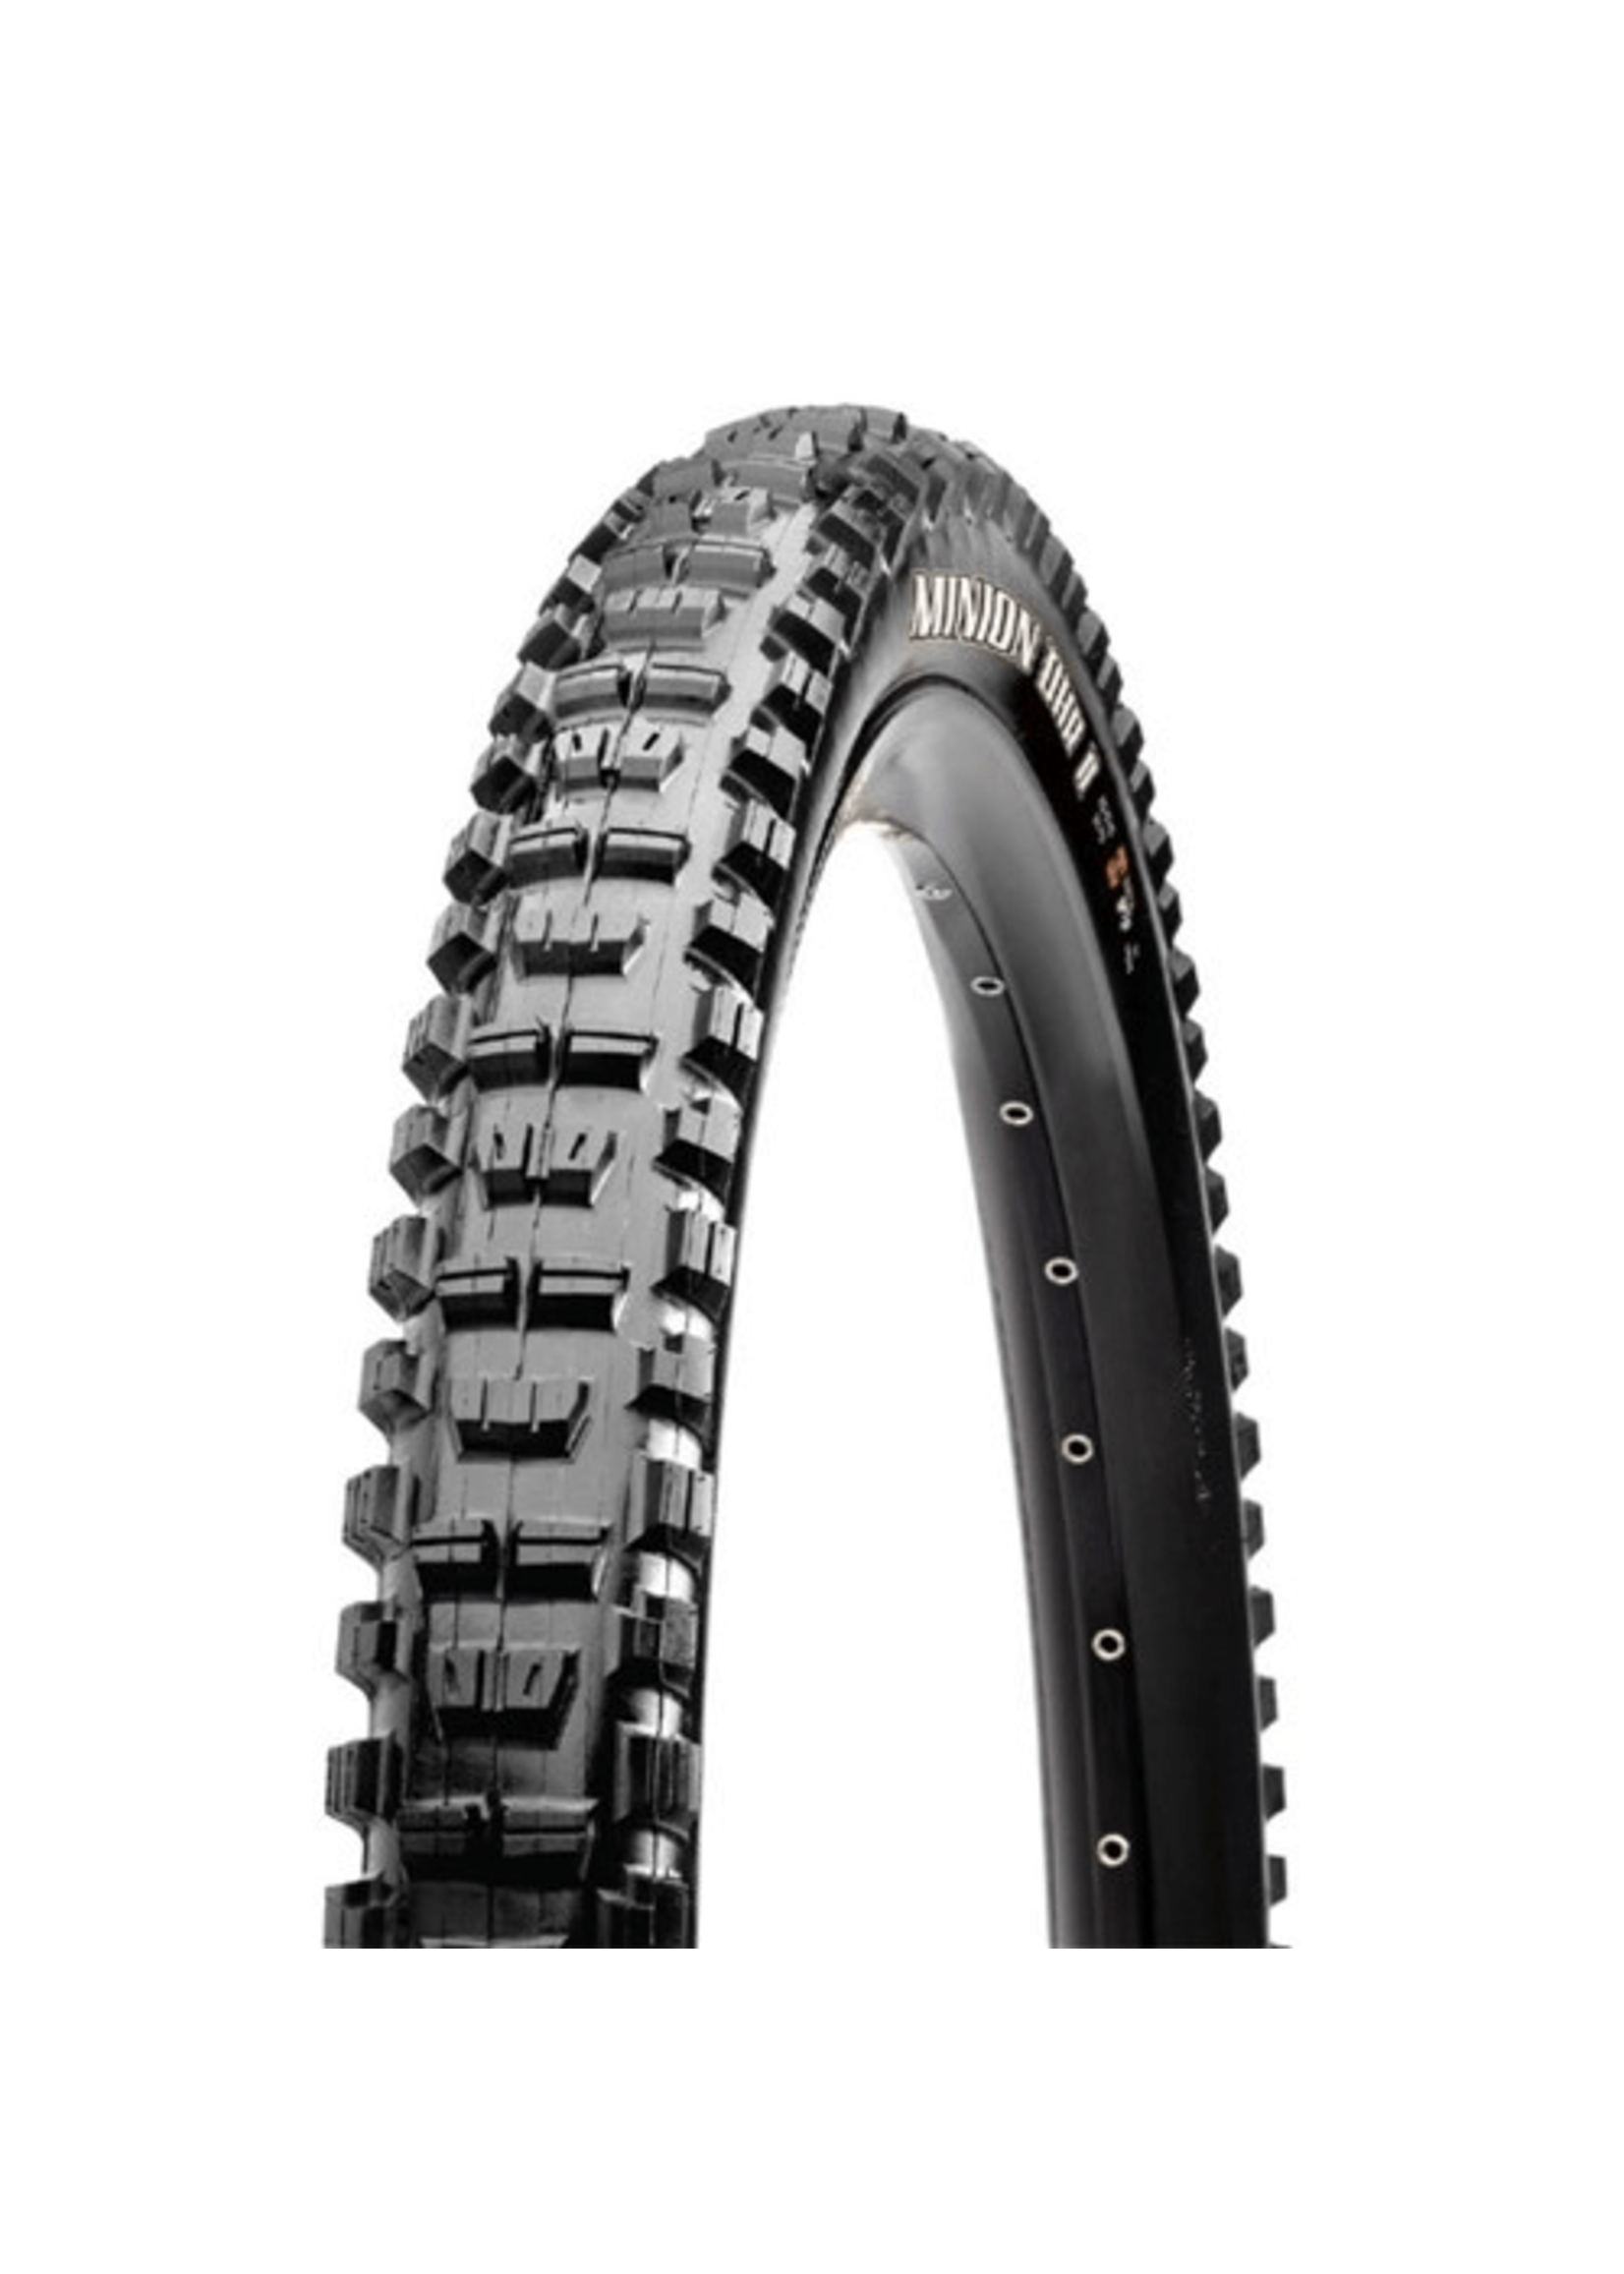 Maxxis Maxxis, Minion DHR2, Tire, 29''x2.40, Folding, Tubeless Ready, 3C Maxx Terra, EXO+, Wide Trail, 120TPI, Black